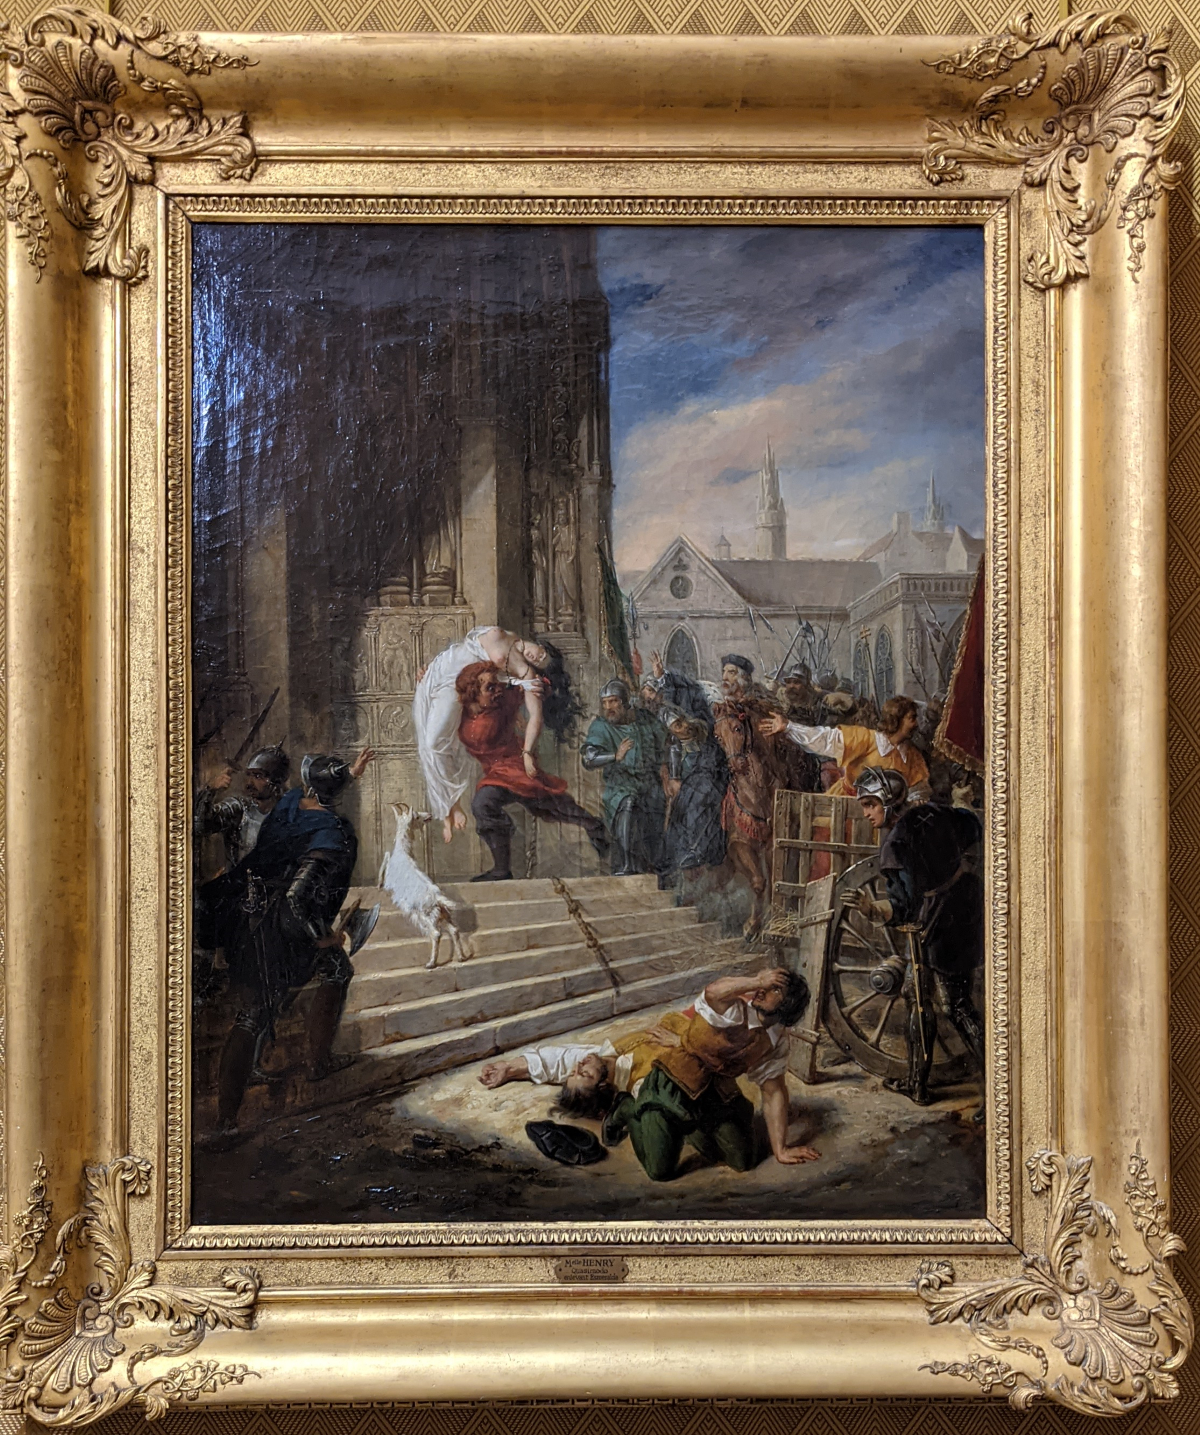 Painting of Hunchback of Notre Dame